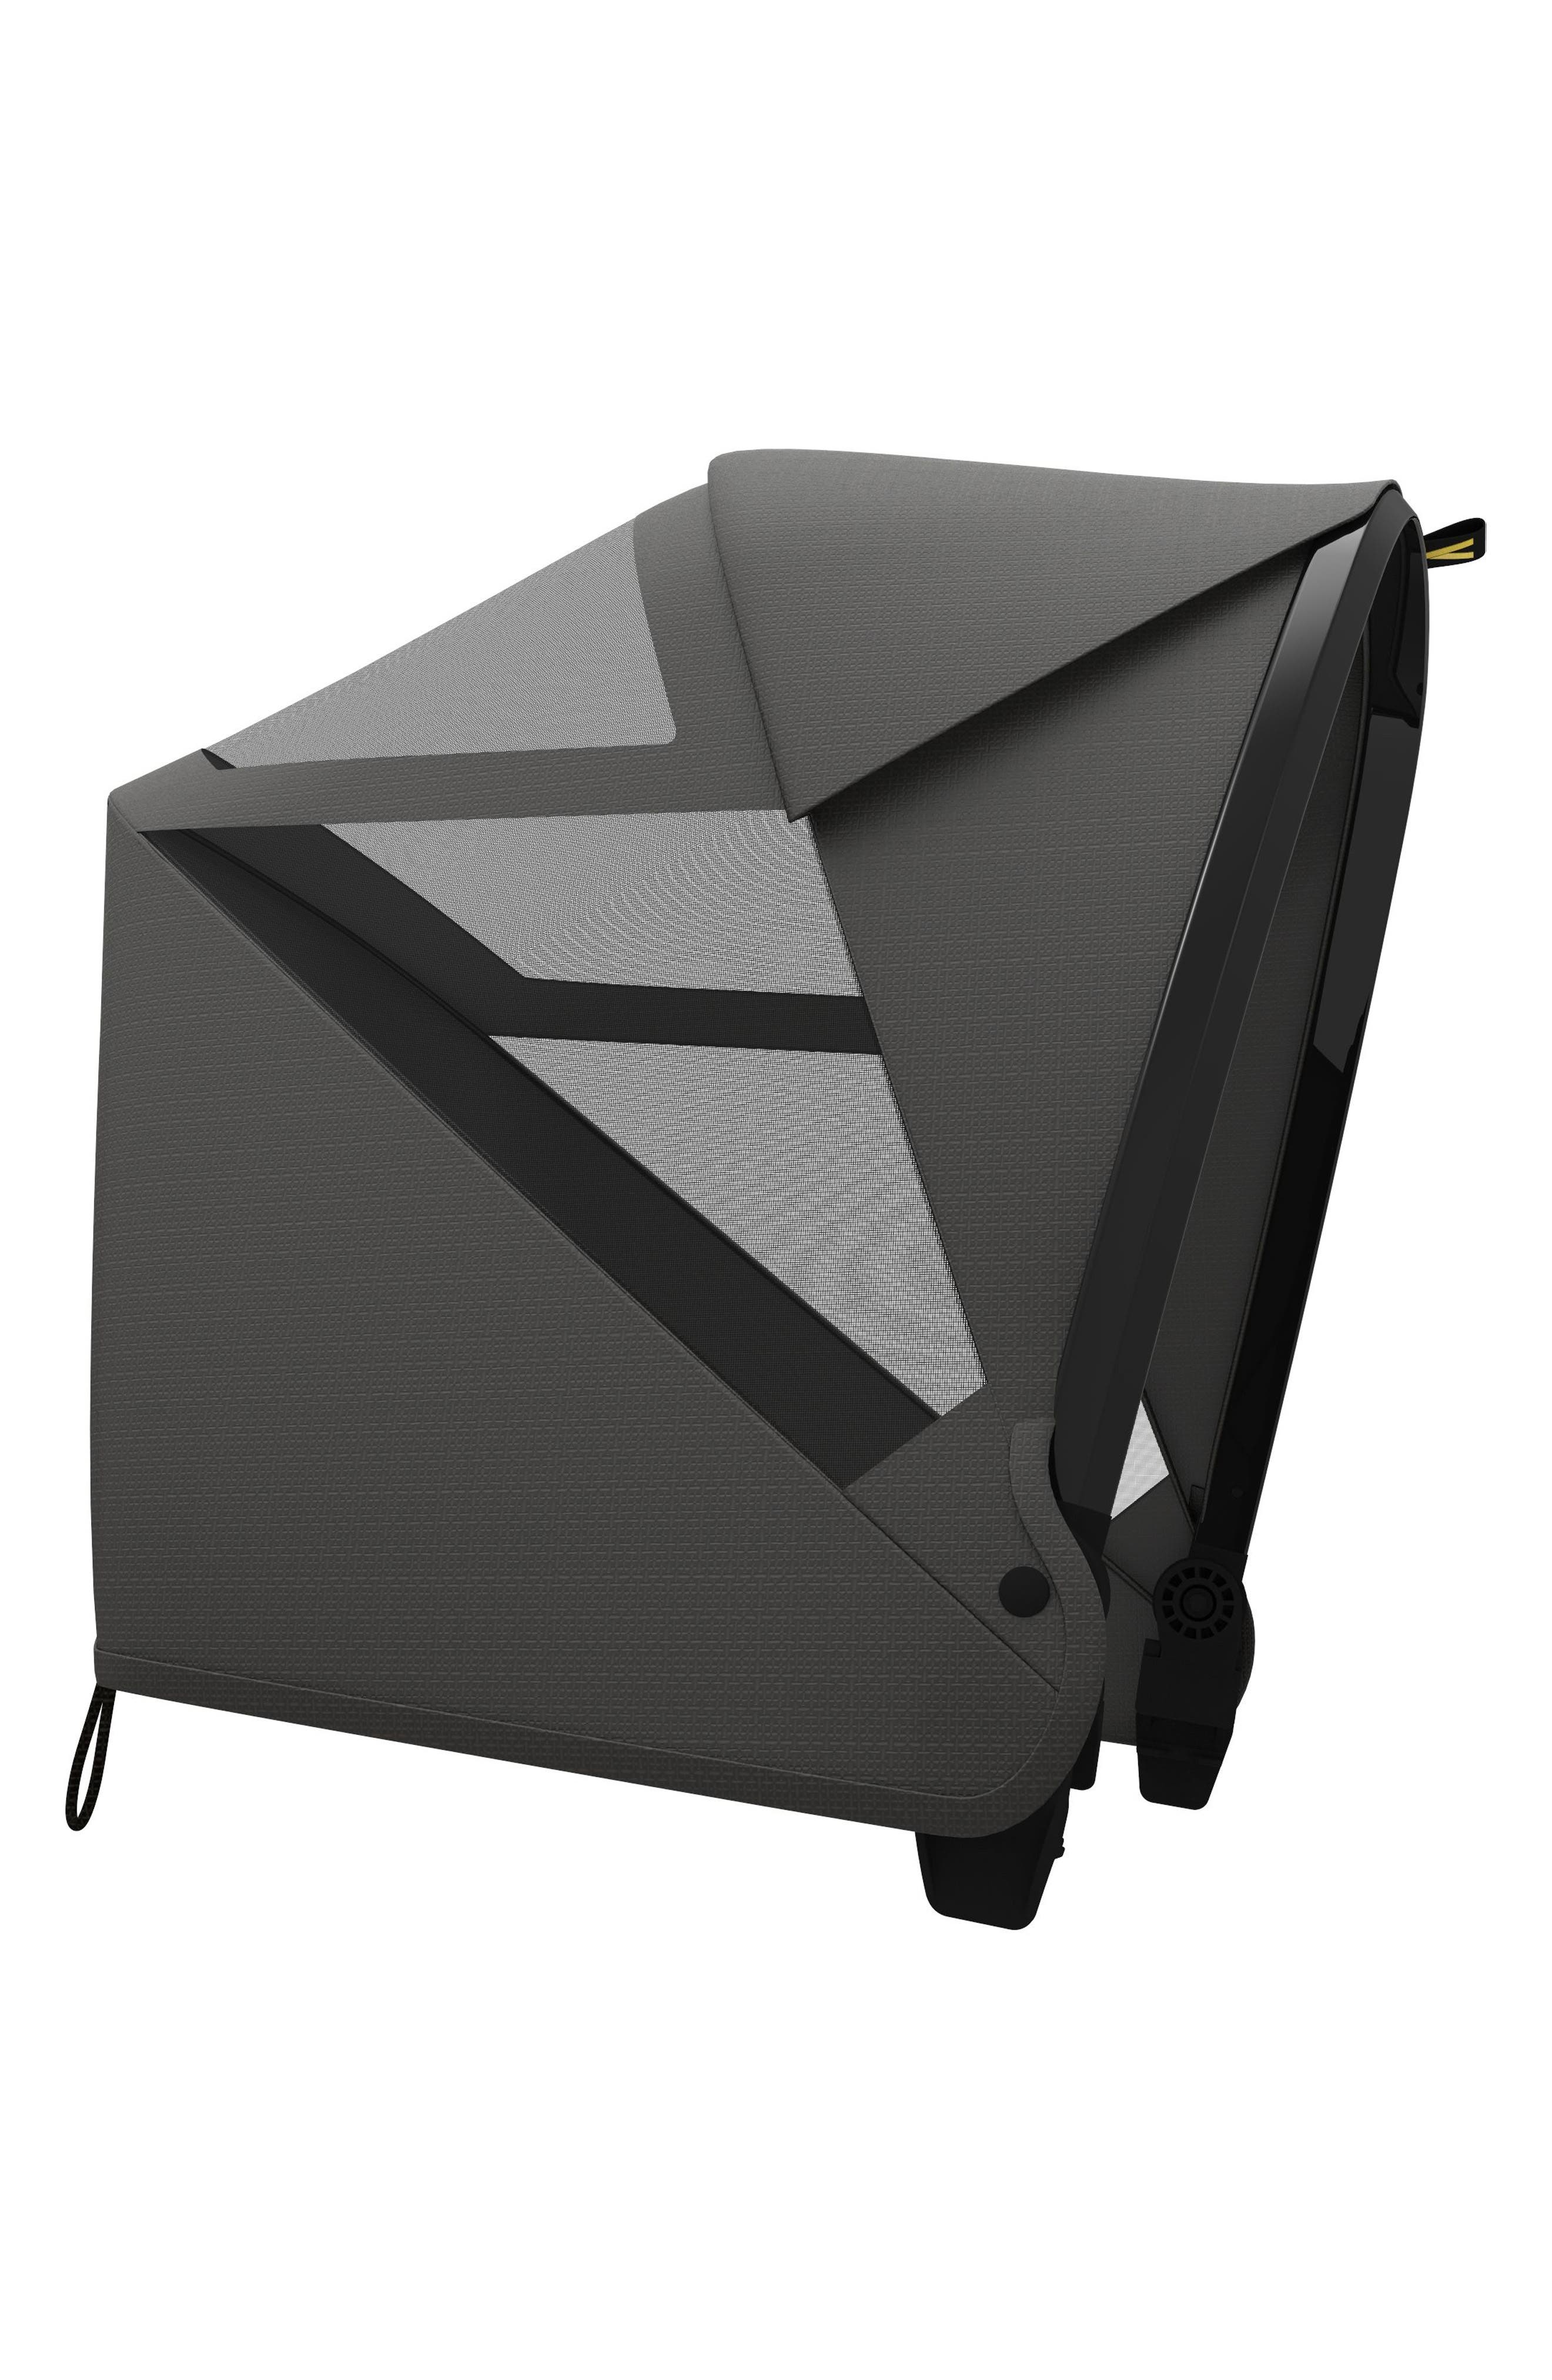 Main Image - Veer Retractable Canopy